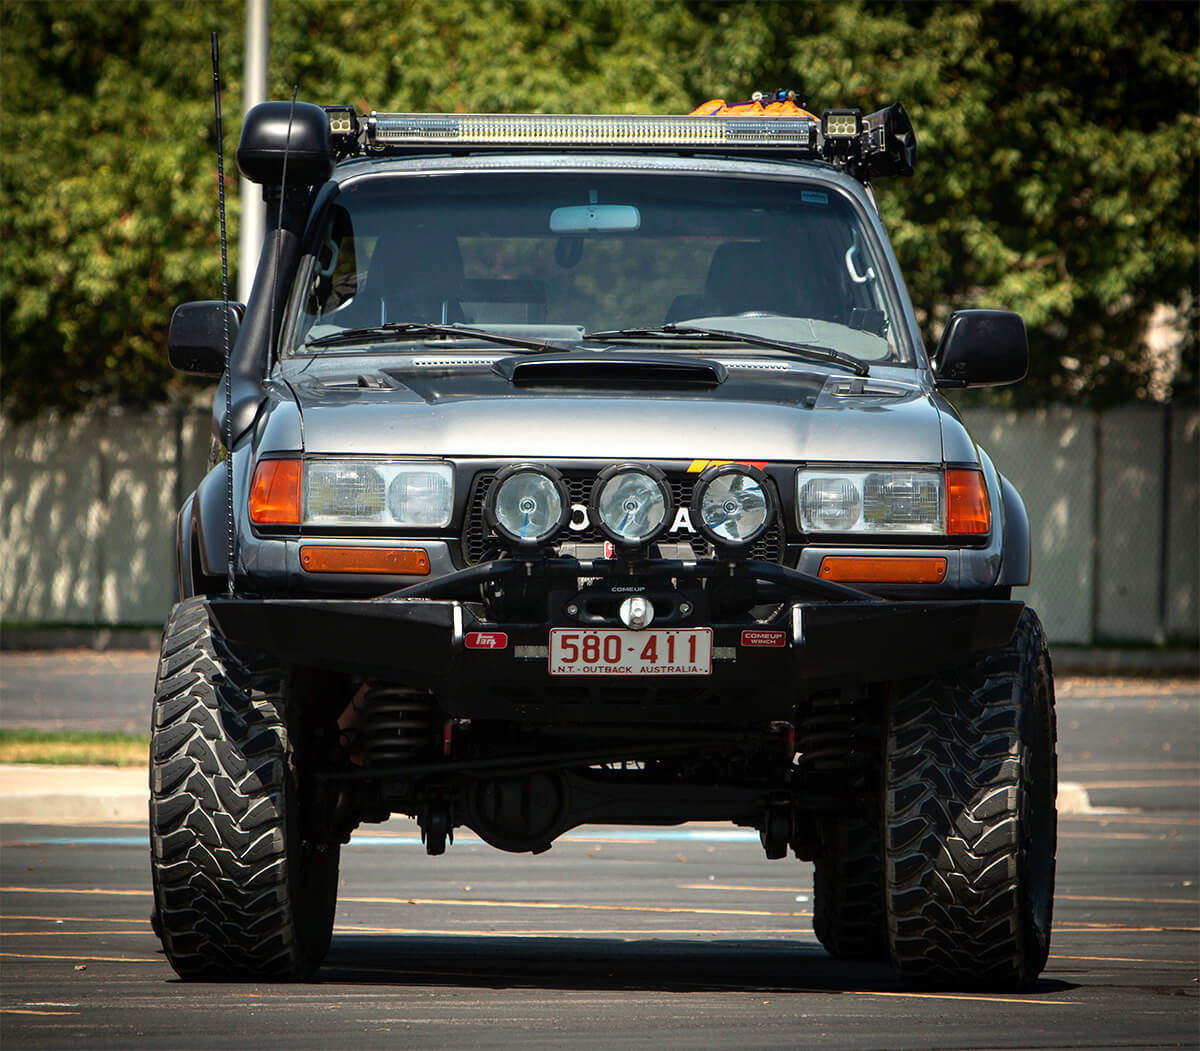 Toyota Land Cruiser 80 with a snorkel and LED lightbar